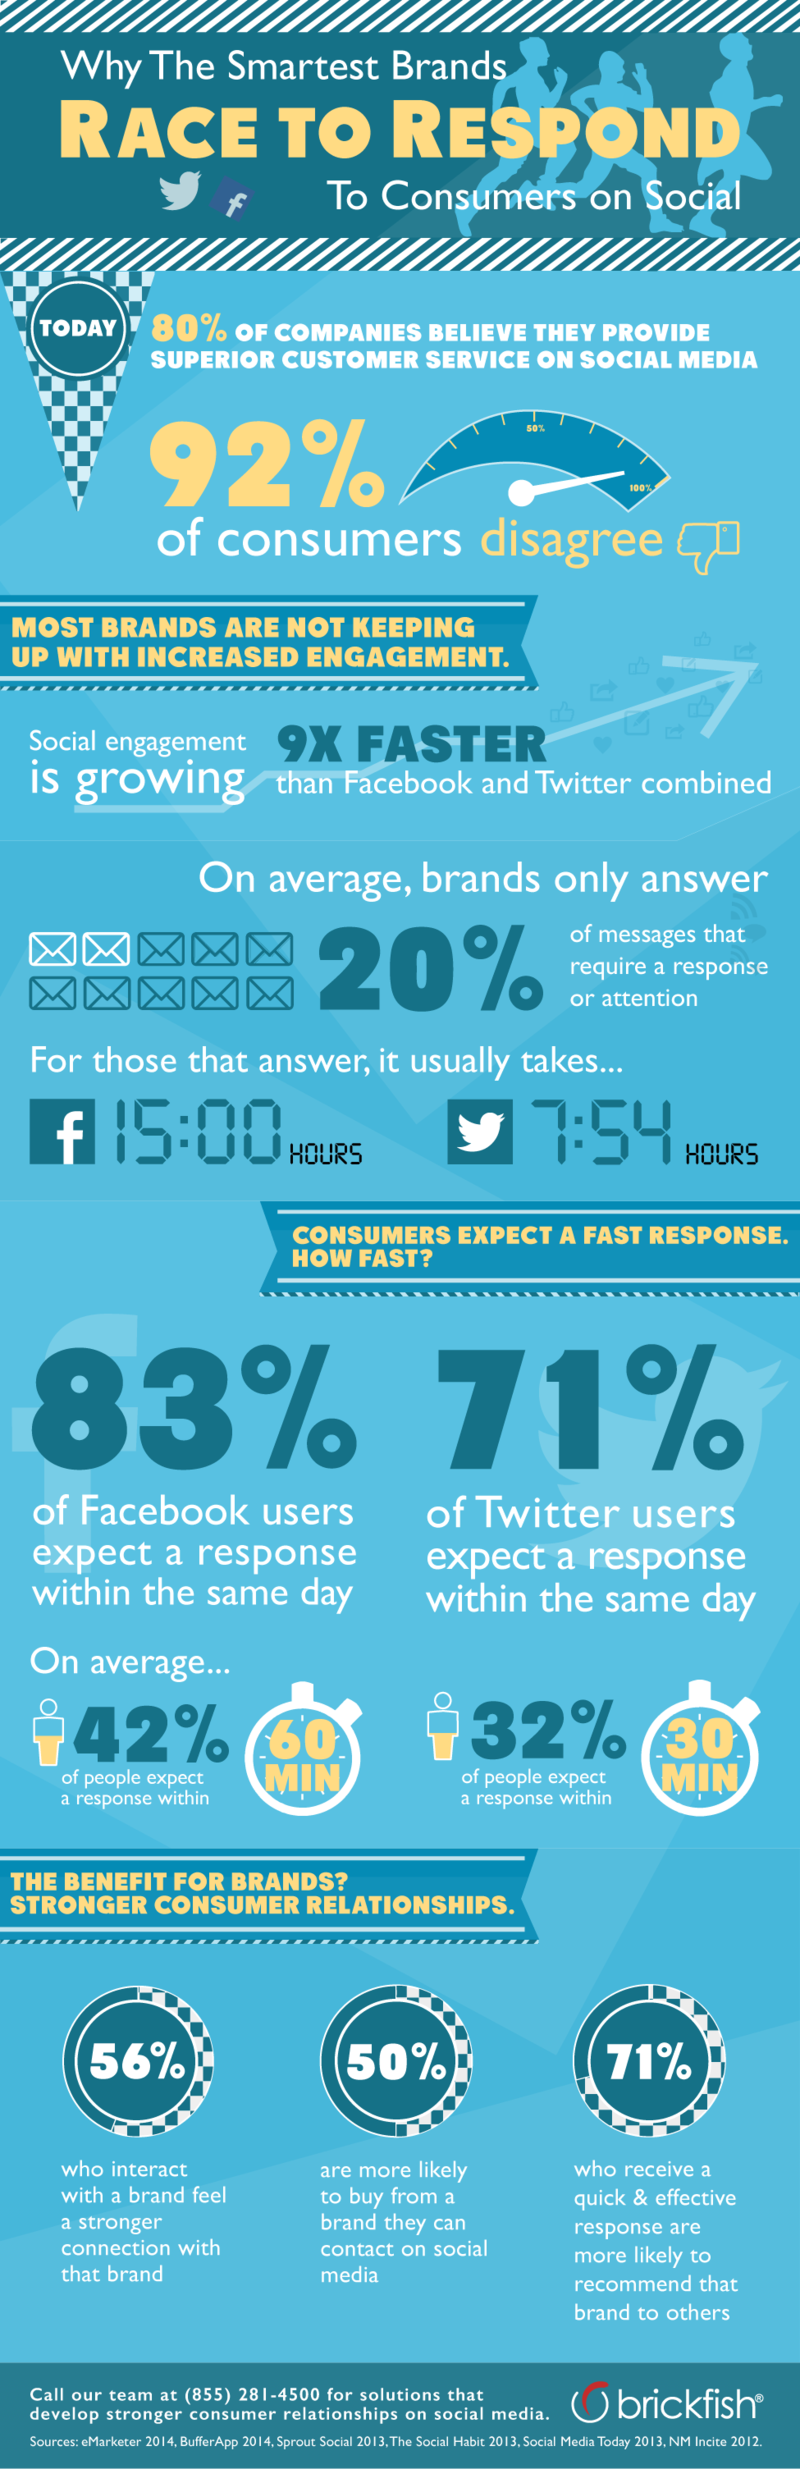 How Do You Build Stronger Consumer Relationships With Social Media? #Infographic